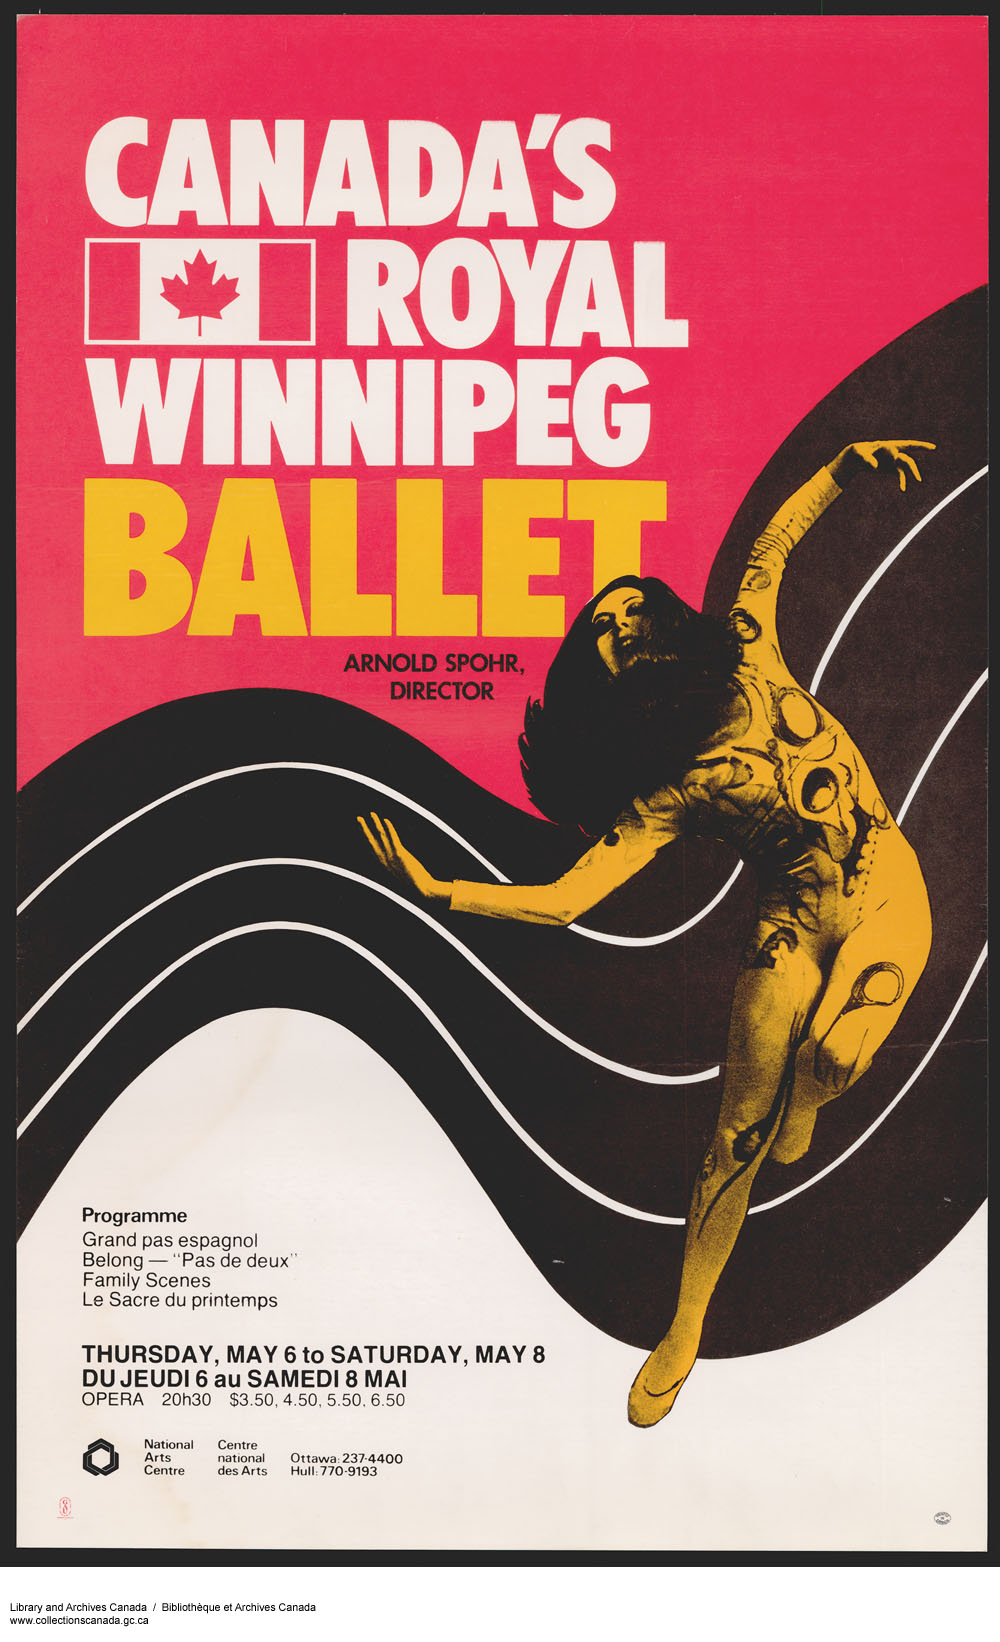 Canada's Royal Winnipeg Ballet. (item 1)